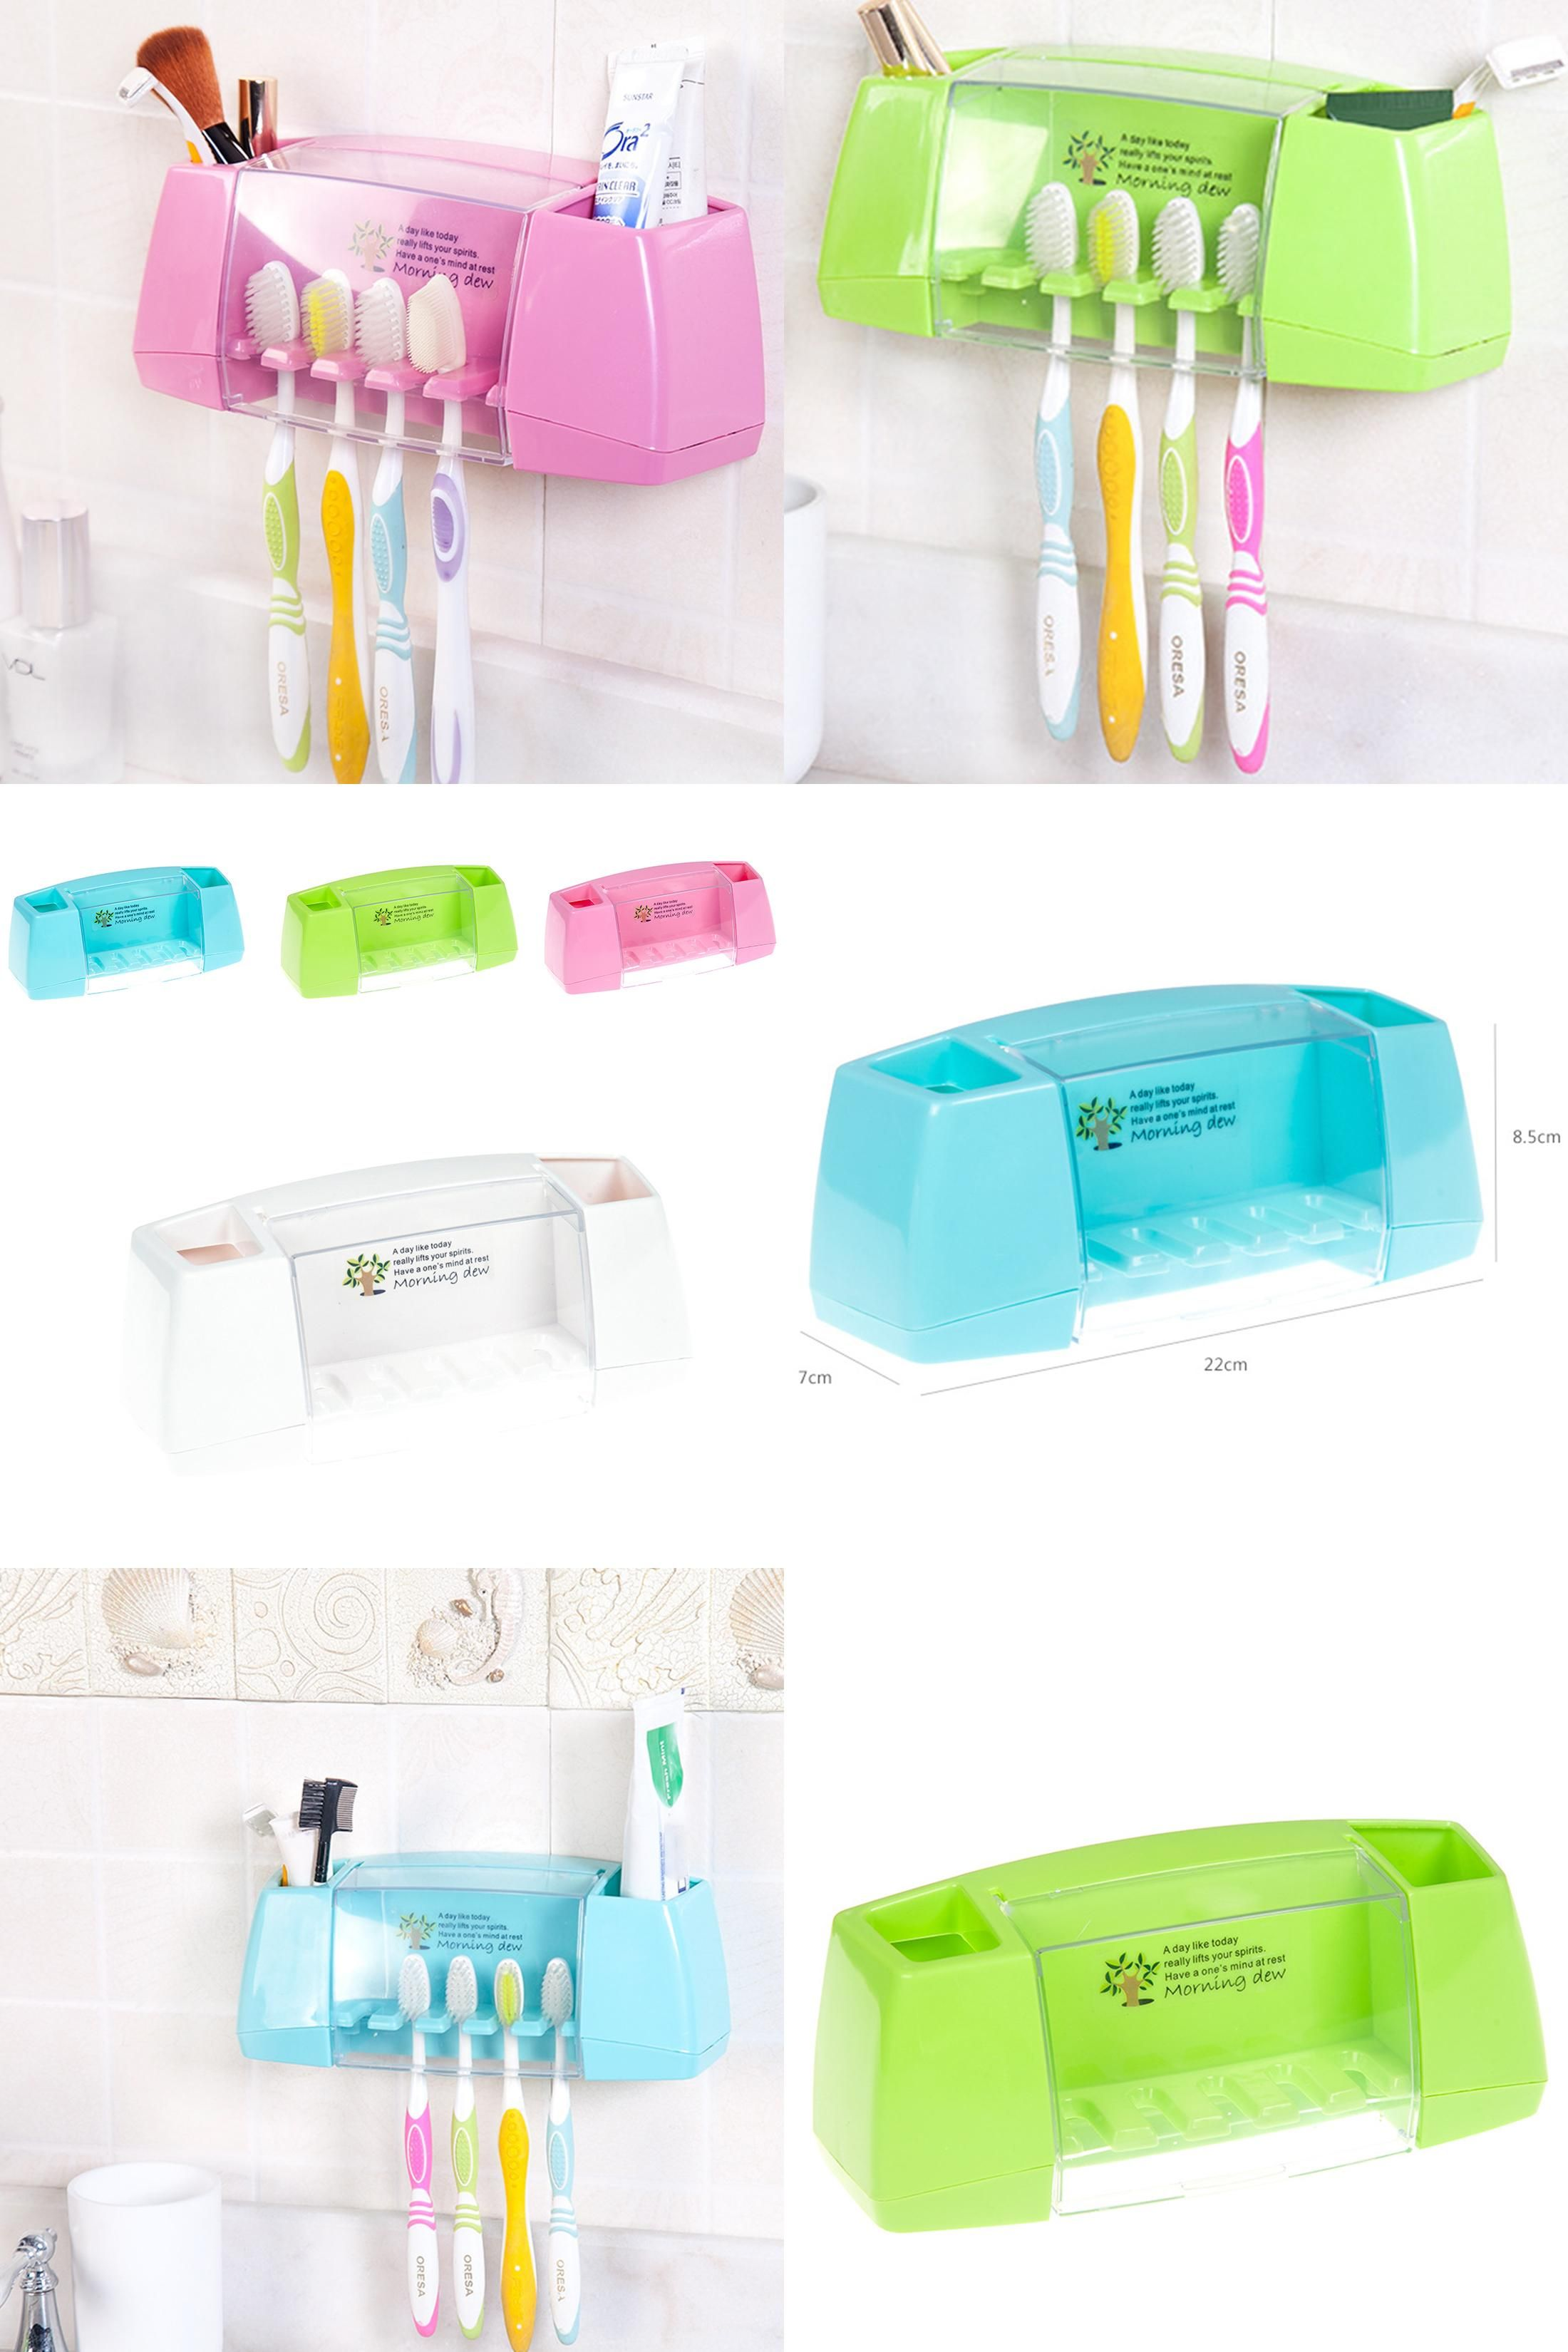 Bathroom Accessories Holder visit to buy] hot sale multifunctional toothbrush holder storage